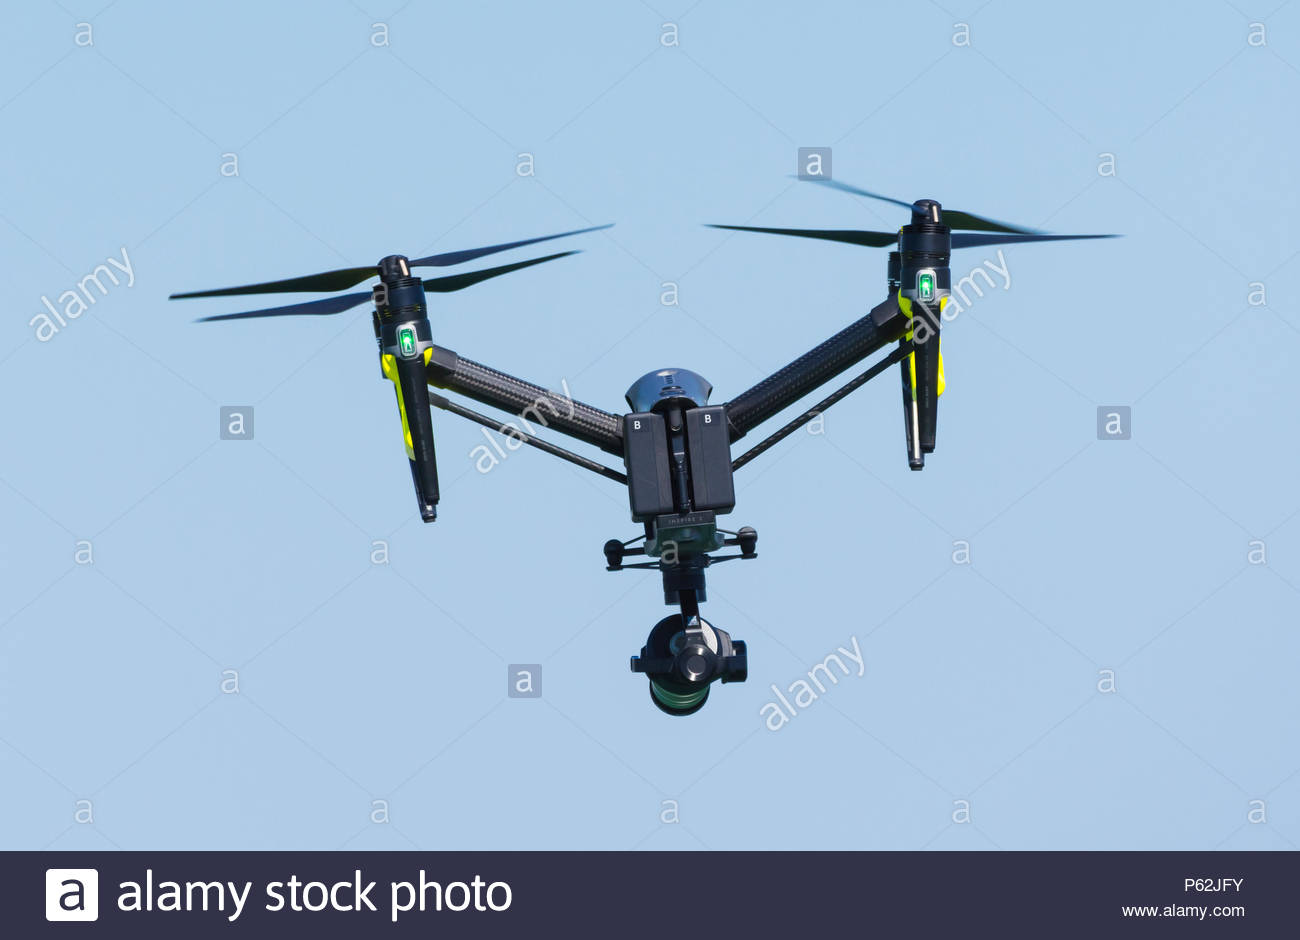 Dji Inspire 2 Quadcopter Fitted With A Video Camera Flying Against Blue Sky In The Uk